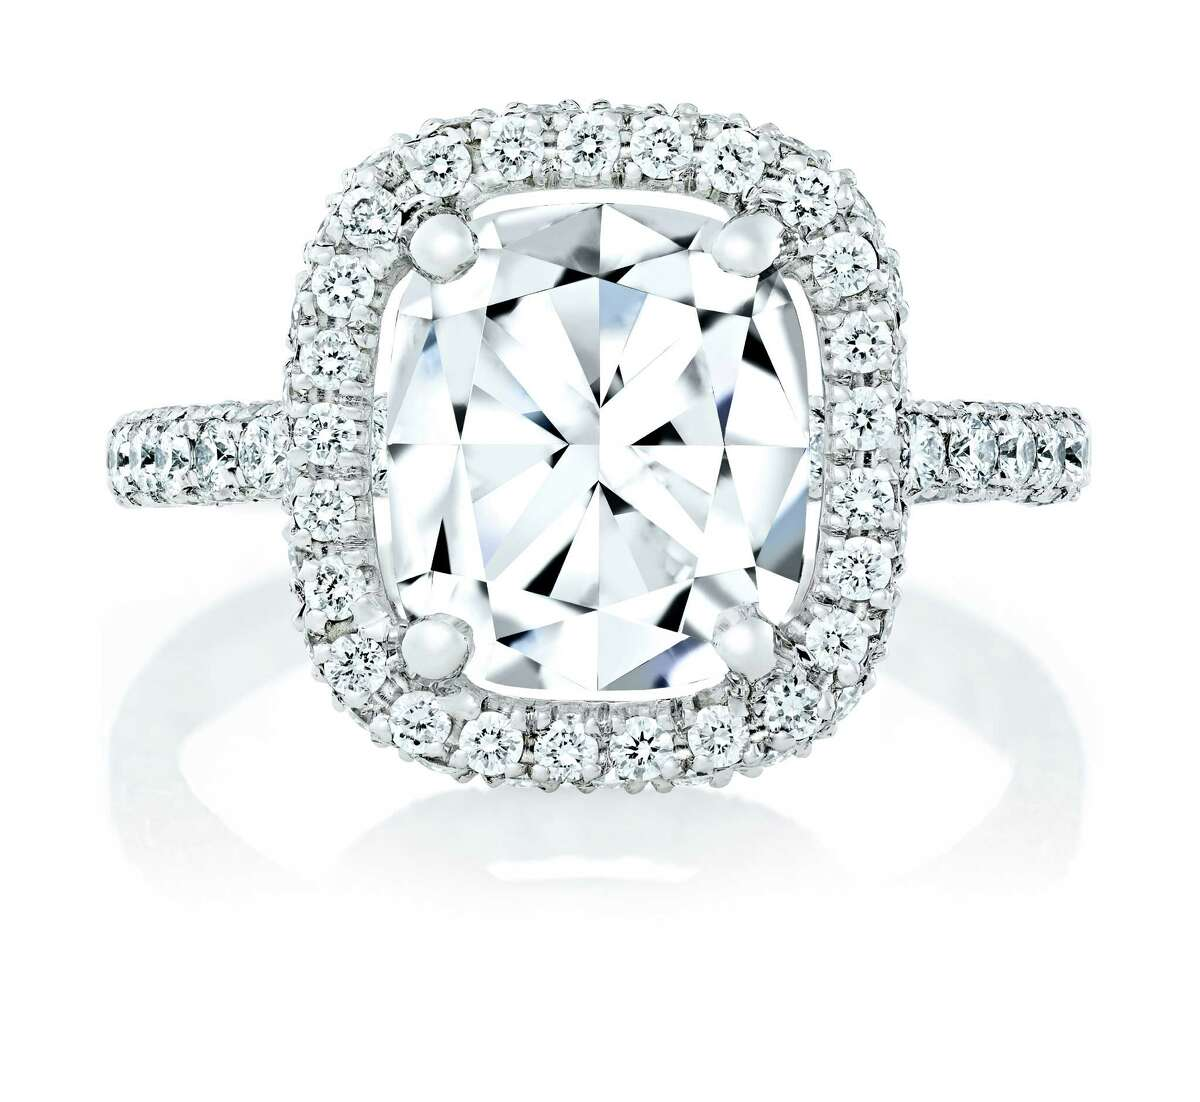 De Beers Aura Solitaire Ring is among the many choices of engagement rings at the new De Beers For You, Forever, iPad application. Available at De Beers Houston Galleria. www.foryouforever.com